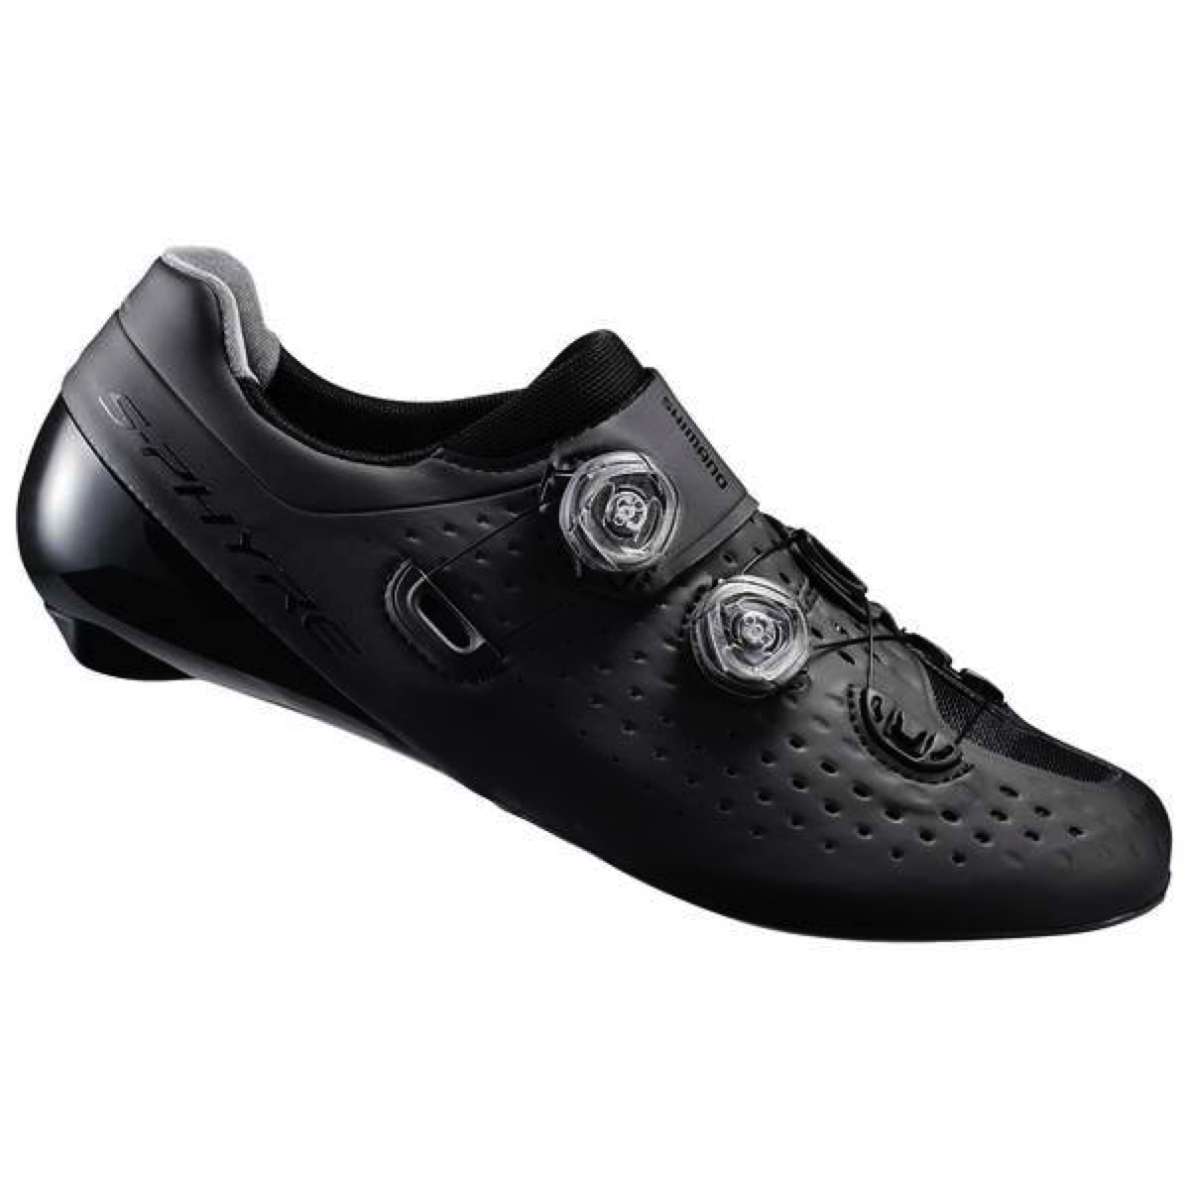 Shimano Schoen Race S-Phyre 2017 Limited Edition